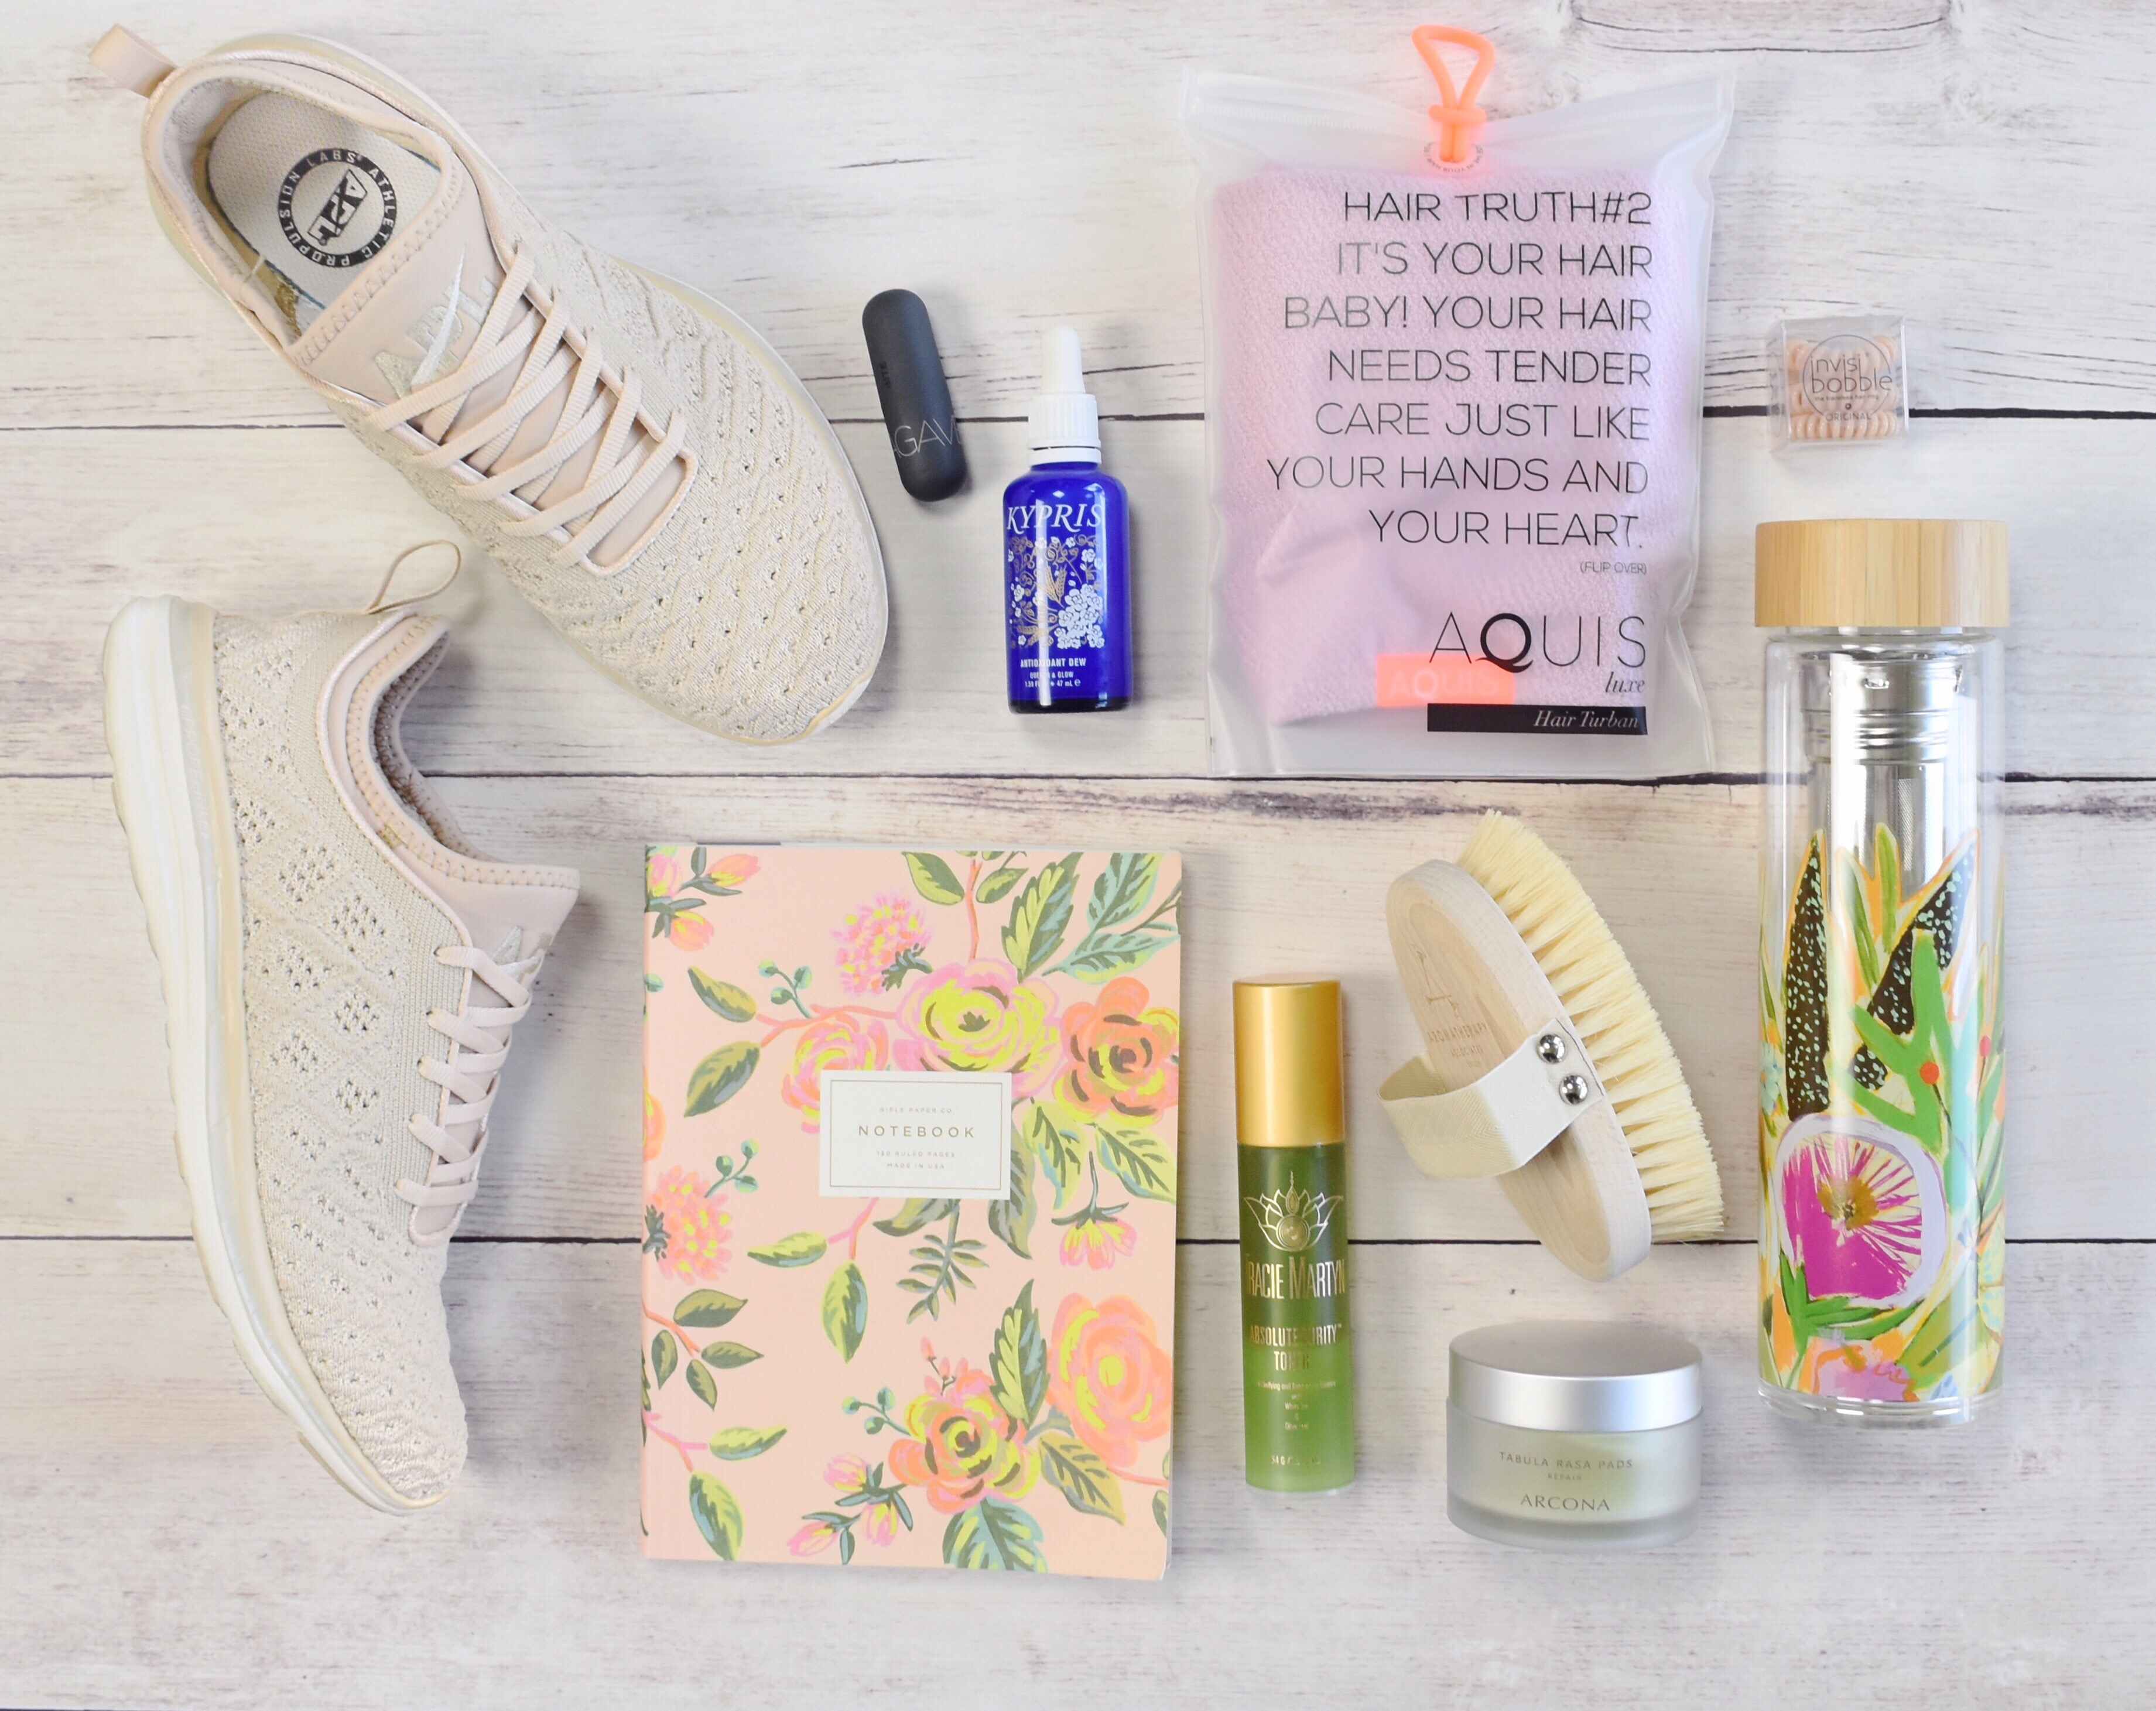 APL Techloom Phantom; rifle paper co notebook; food journal; bite beauty agave balm; Tracie martyn absolute purity toner; body brush; arcona tabula rasa pads; ingrown hairs; aquis hair turban; invisibobble hair ties; kypris antioxidant dew; lulie wallace anthropologie water bottle